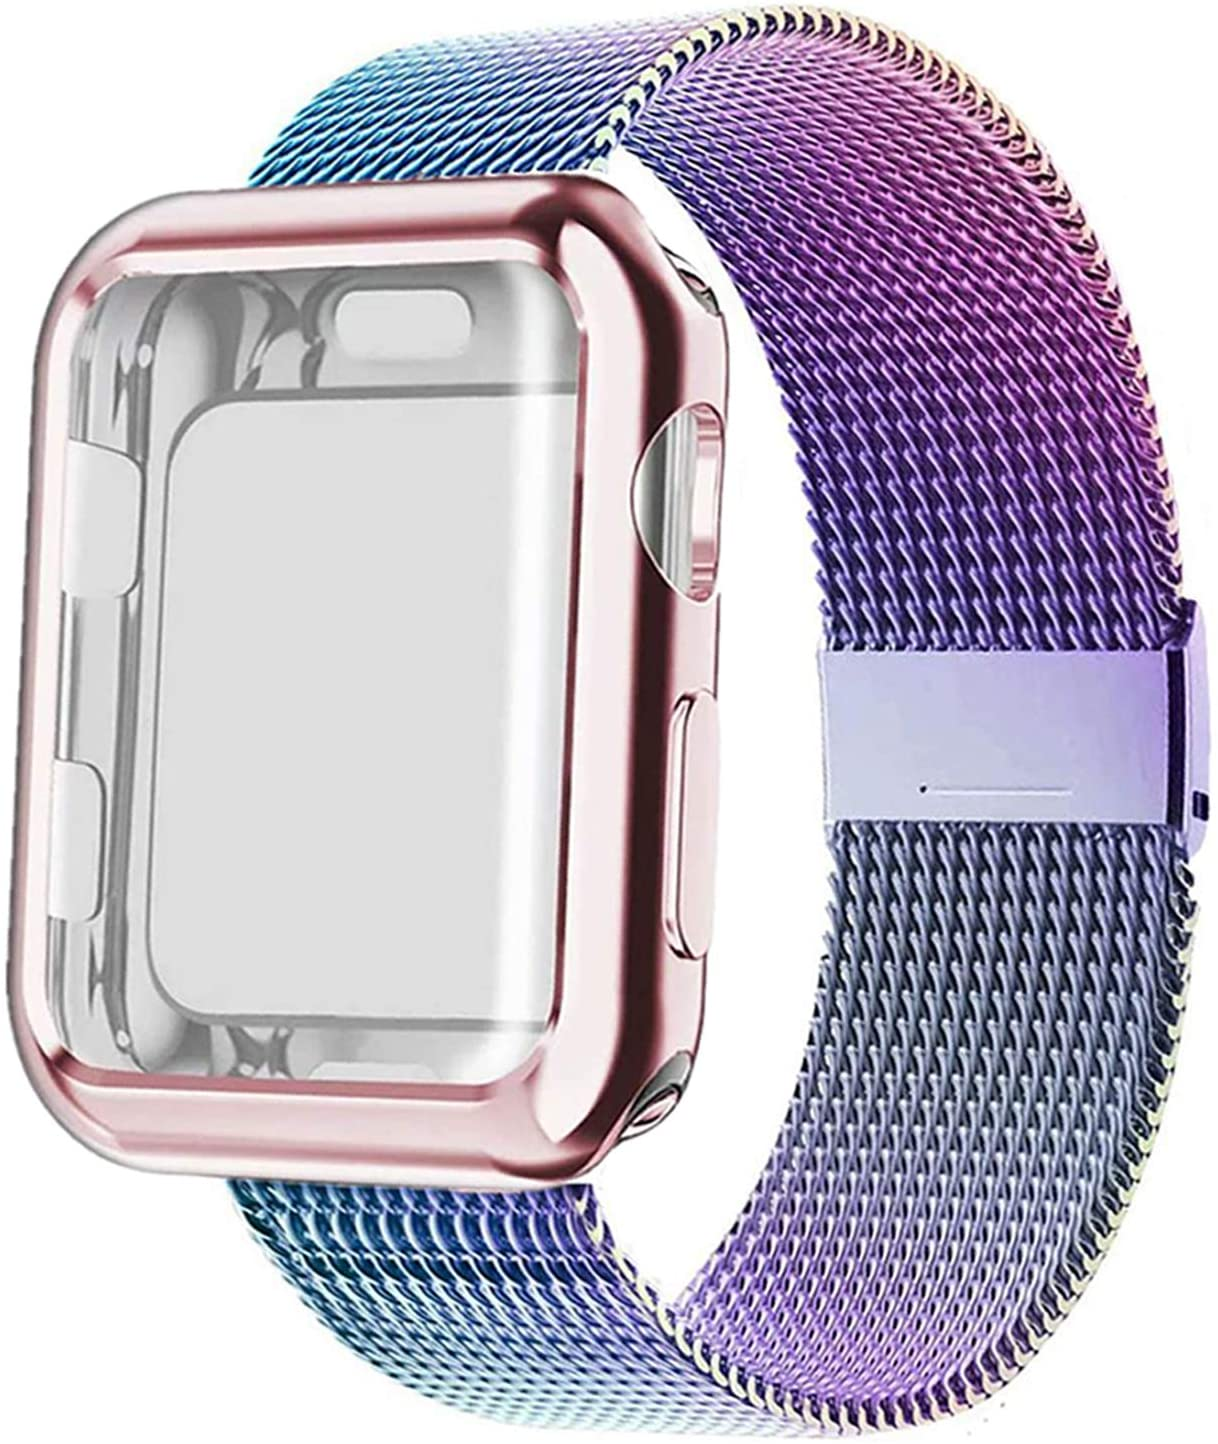 SinJonden Compatible with Apple Watch Band 38mm 40mm 42mm 44mm with Case,Stainless Steel Wristband with Protective Screen Case for iWatch Series 6/5/4/3/2/1/SE (Colorful with Rose Pink Case, 40mm)